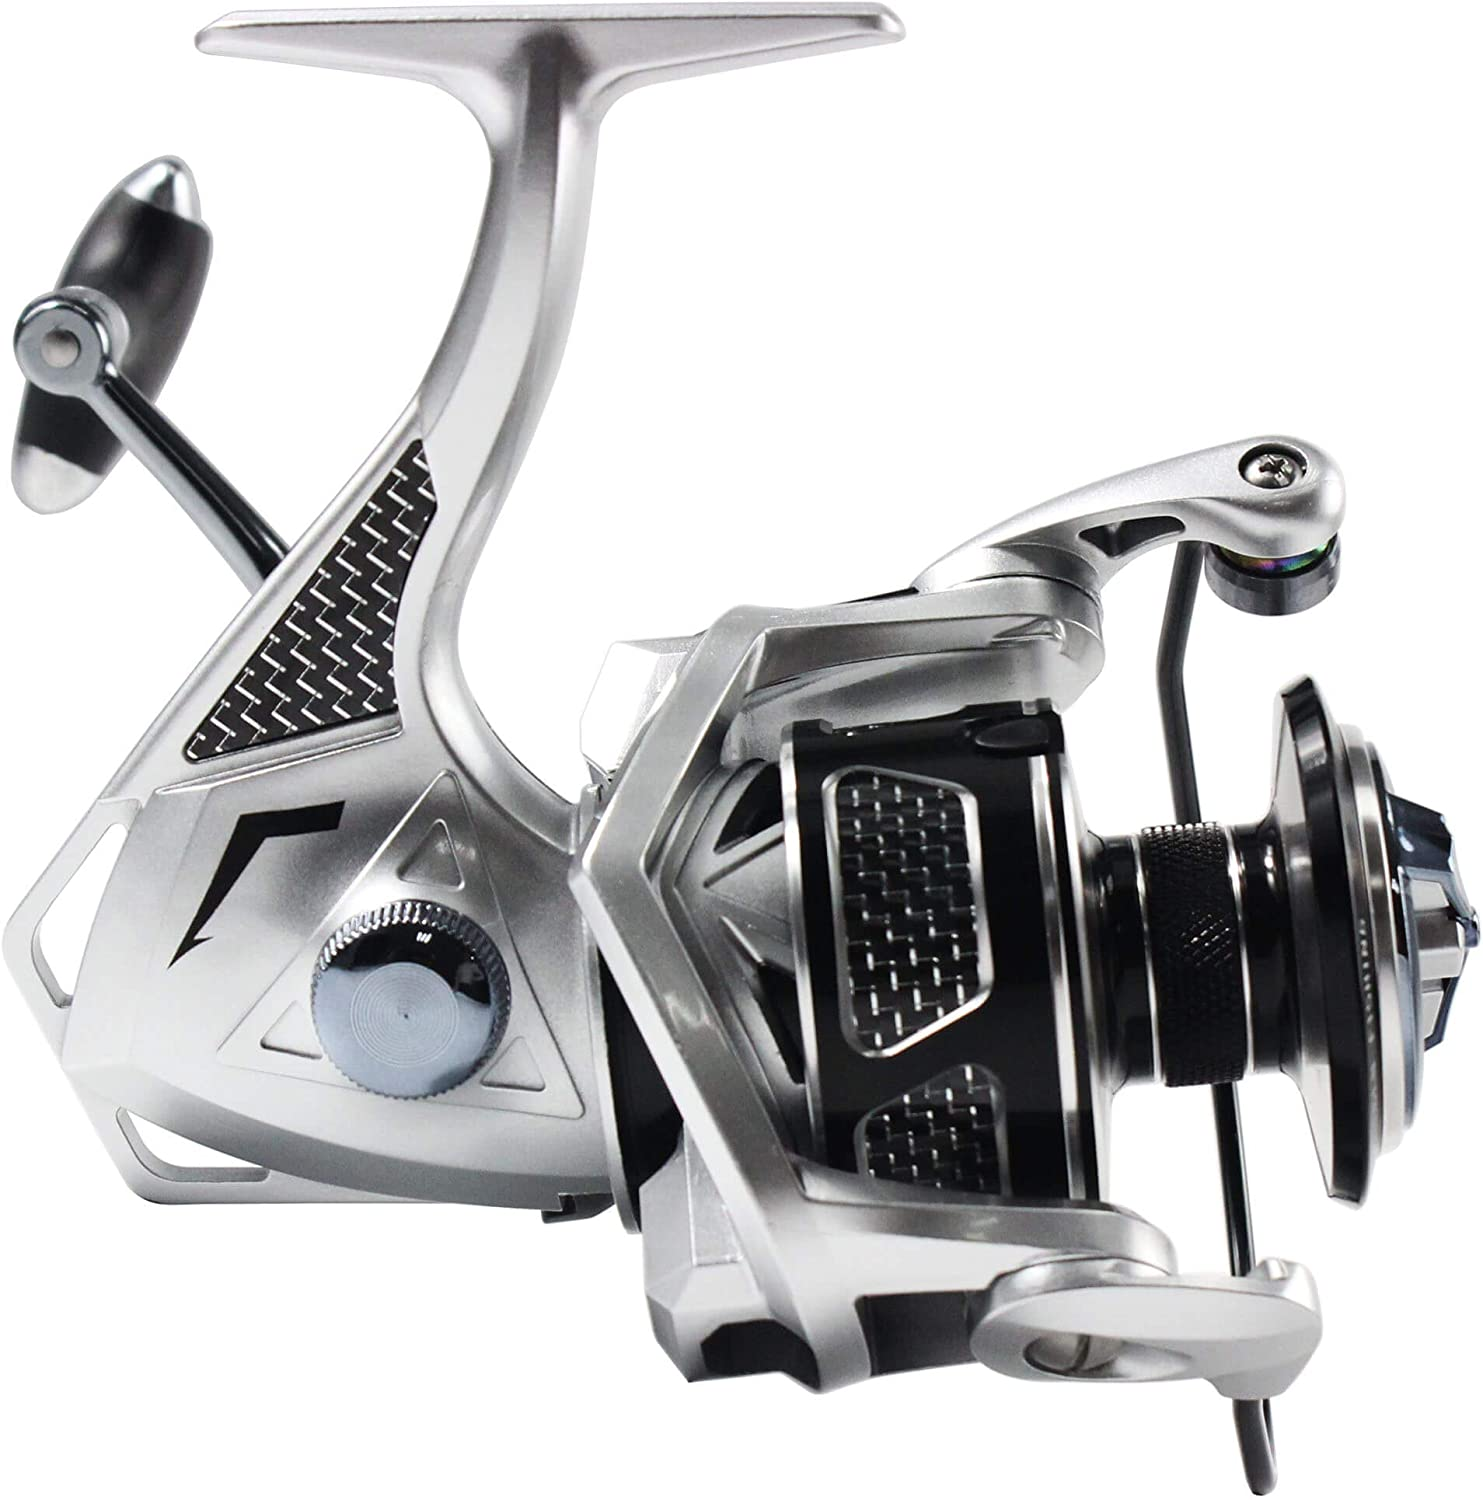 Fishing Reel Spinning Reels Carbon Limited Special Price Aluminum Bo A surprise price is realized Alloy Metal Fiber